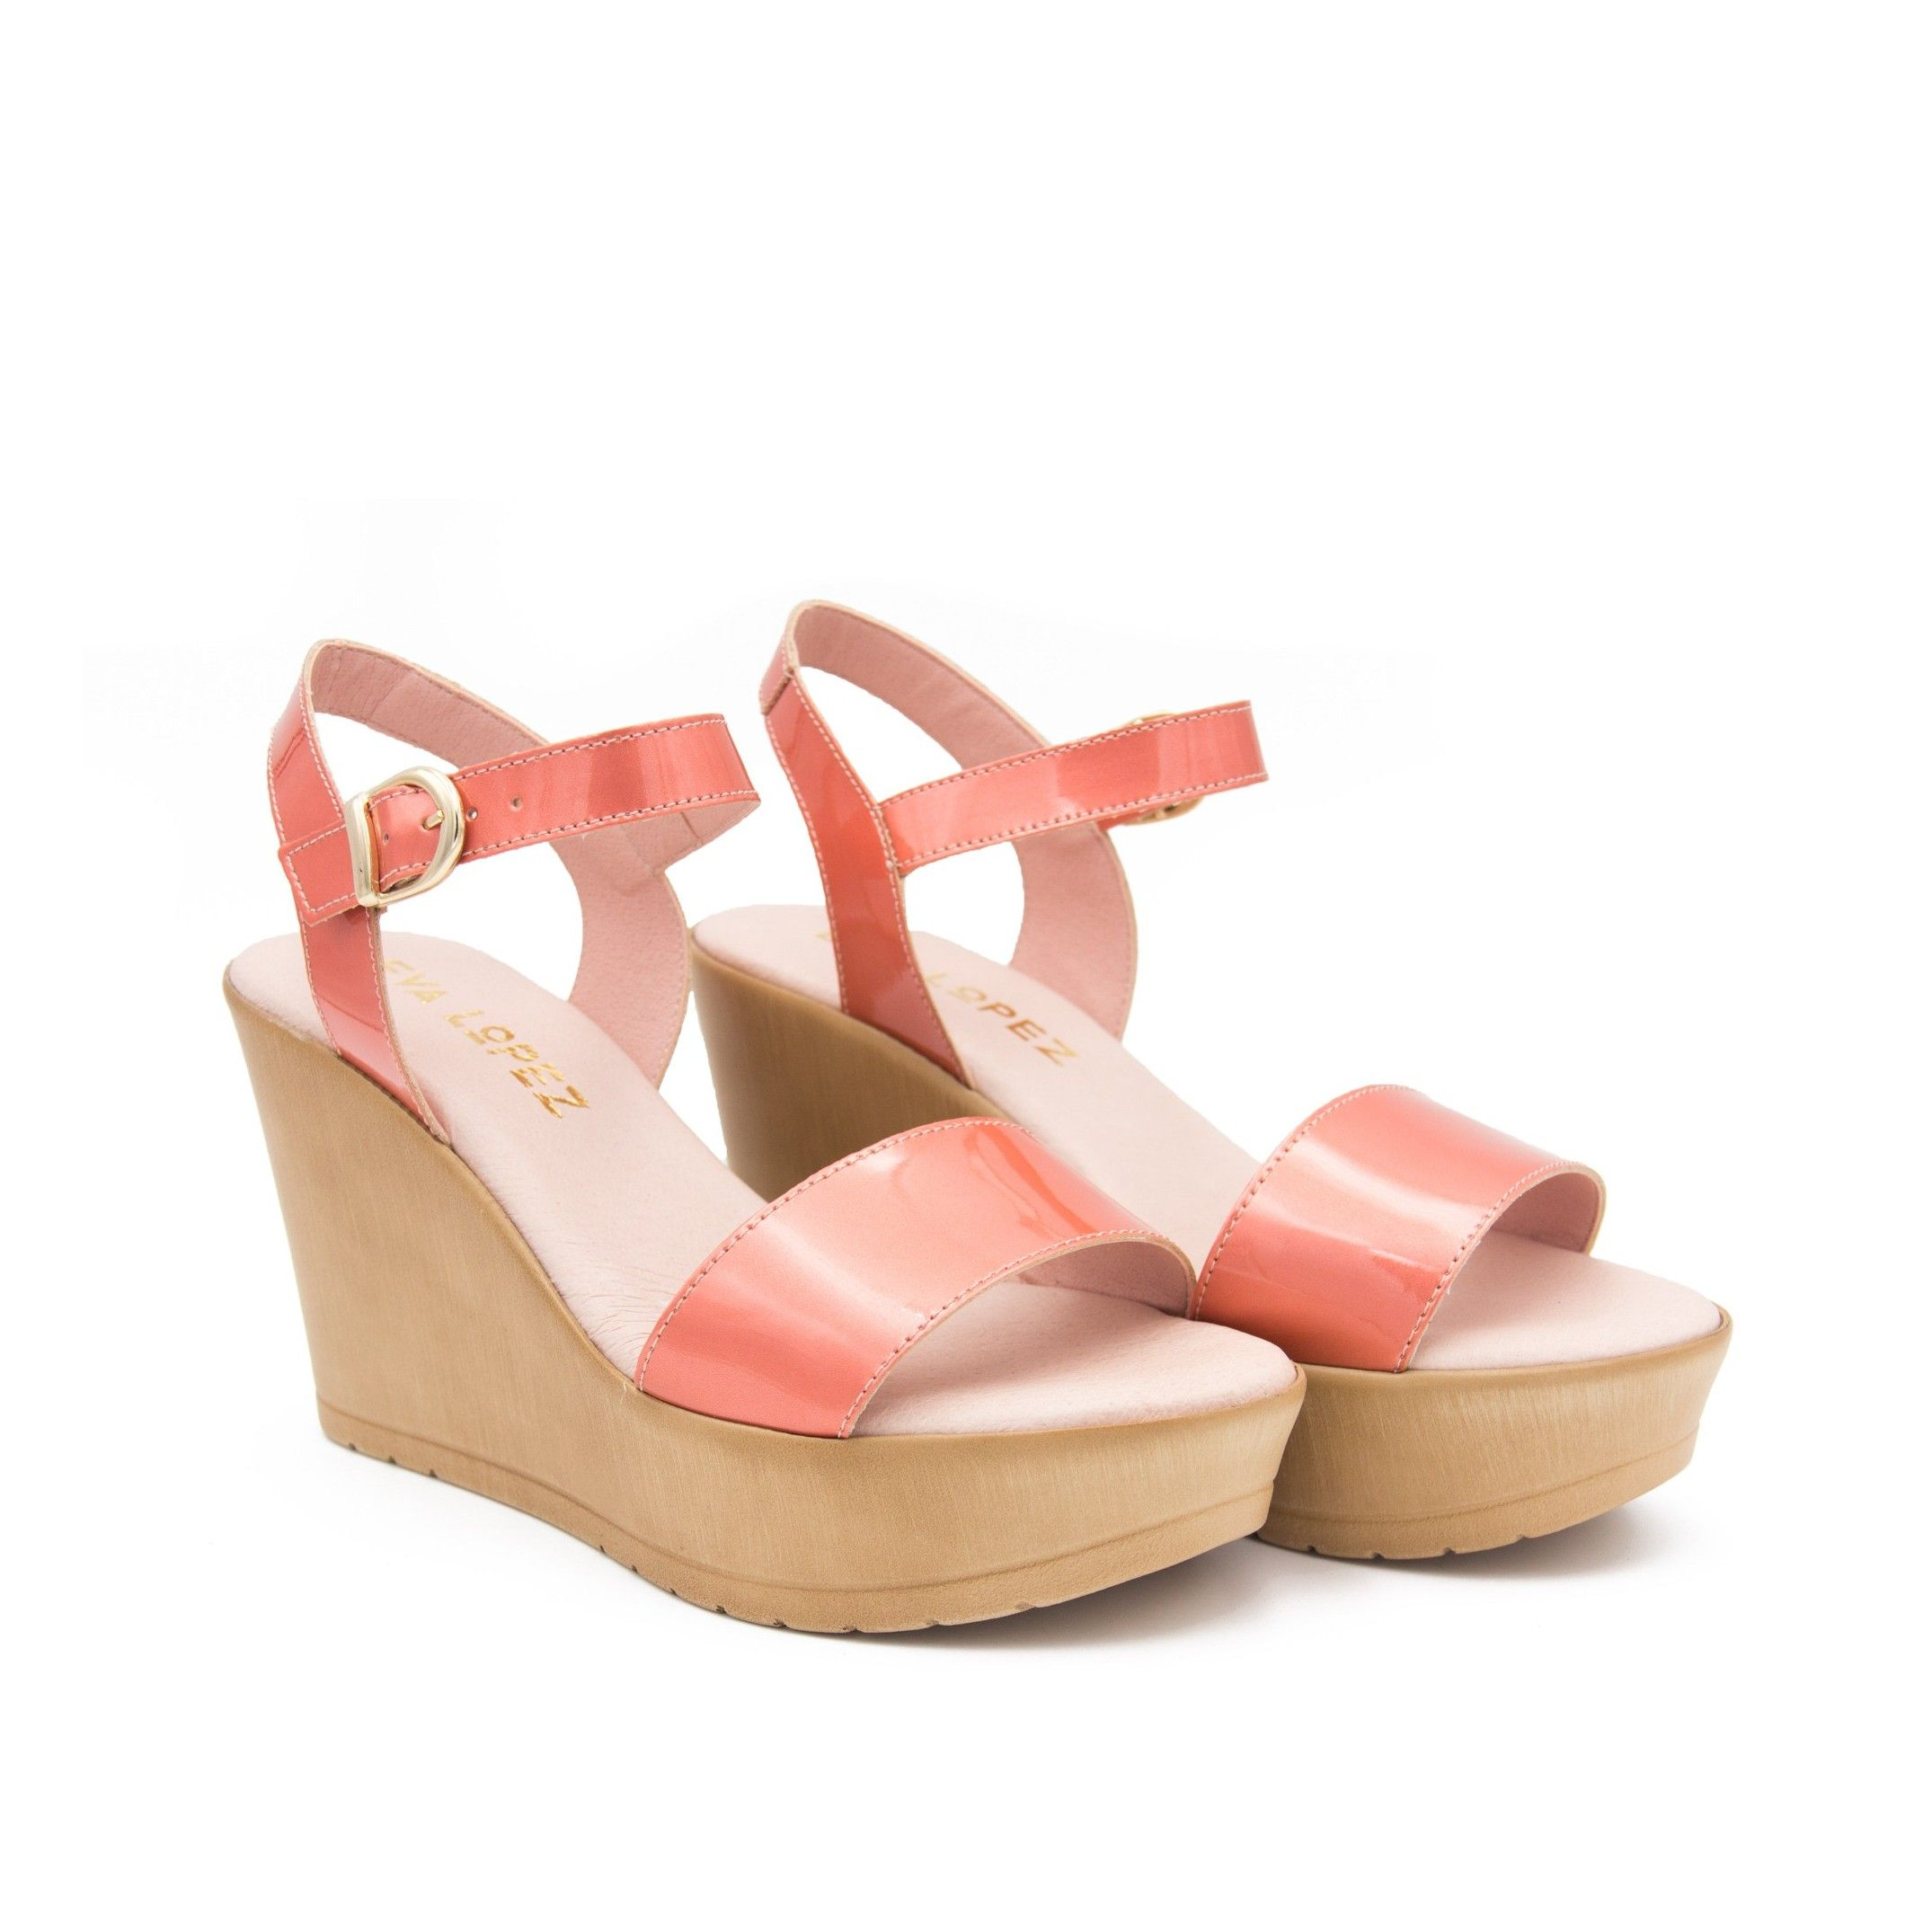 Eva Lopez Wedge sandal with braids in leather